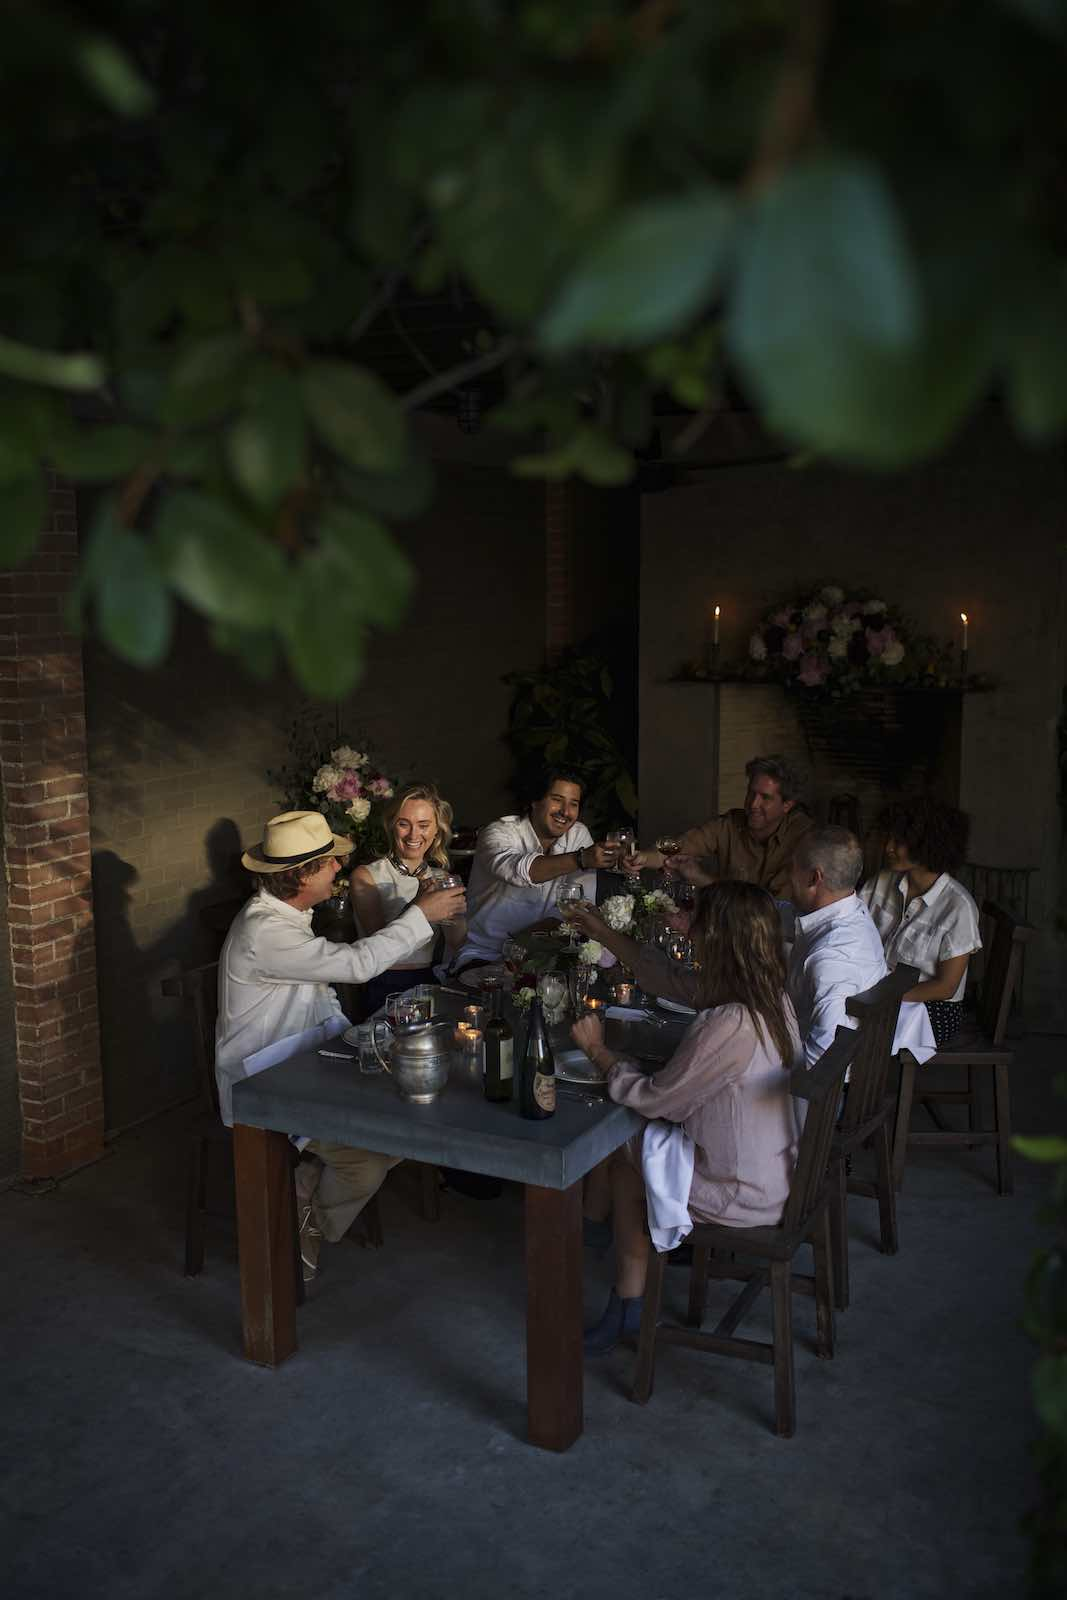 Jody Horton Photography - Evening dinner scene with friends cheersing at a stone table.